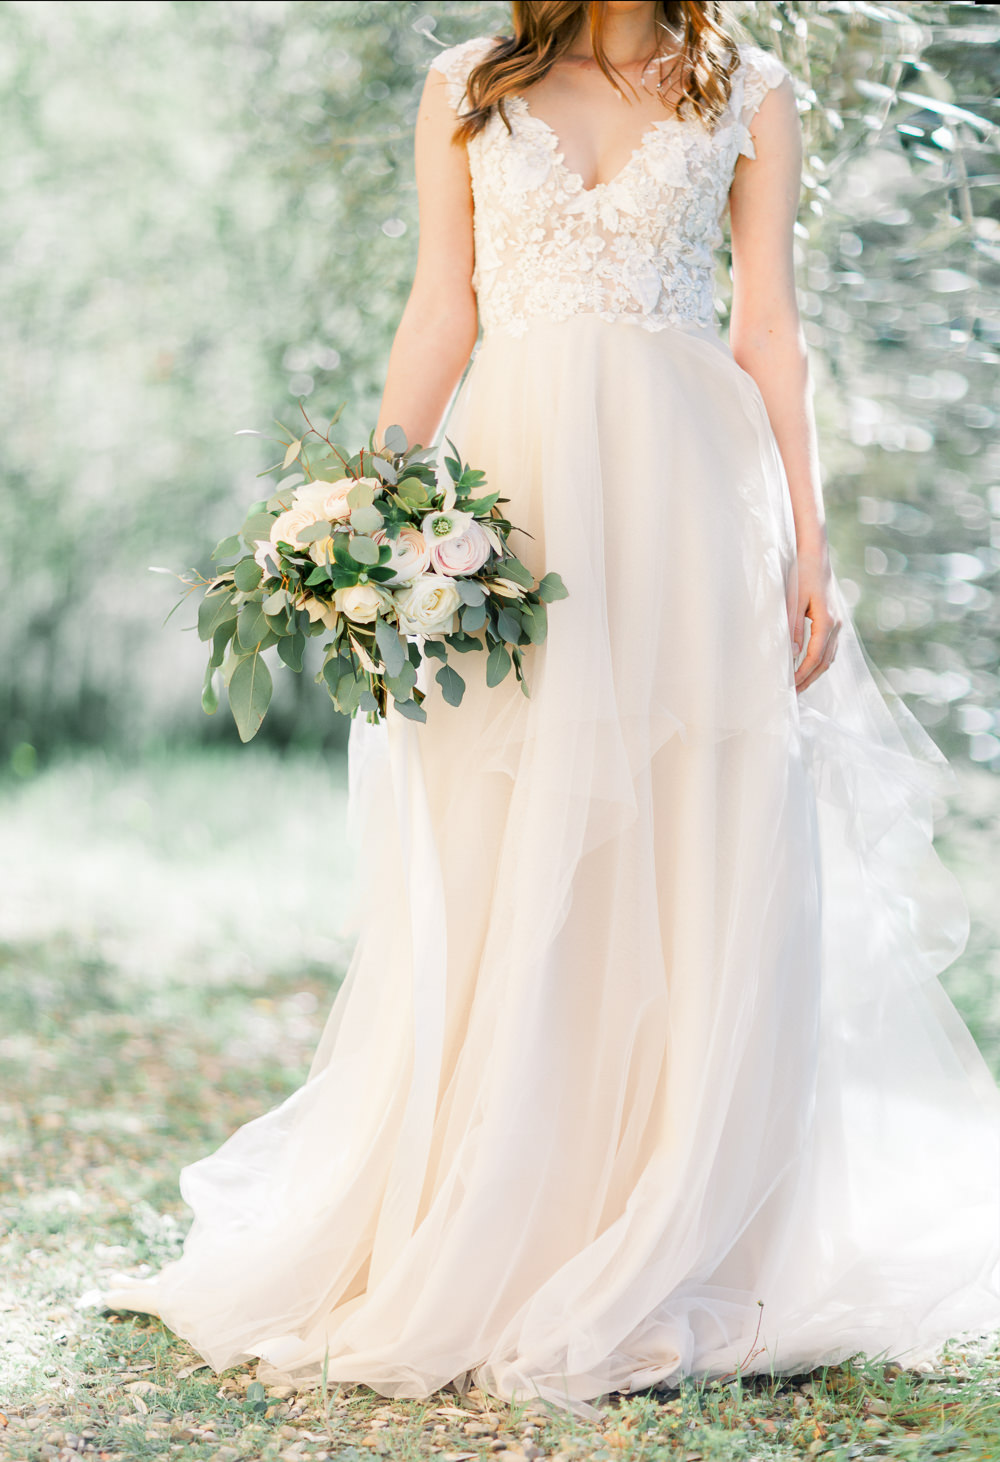 Bride Bridal Dress Gown Tulle Floral Straps Romantic Tuscany Wedding Ideas Sonya Lalla Photography